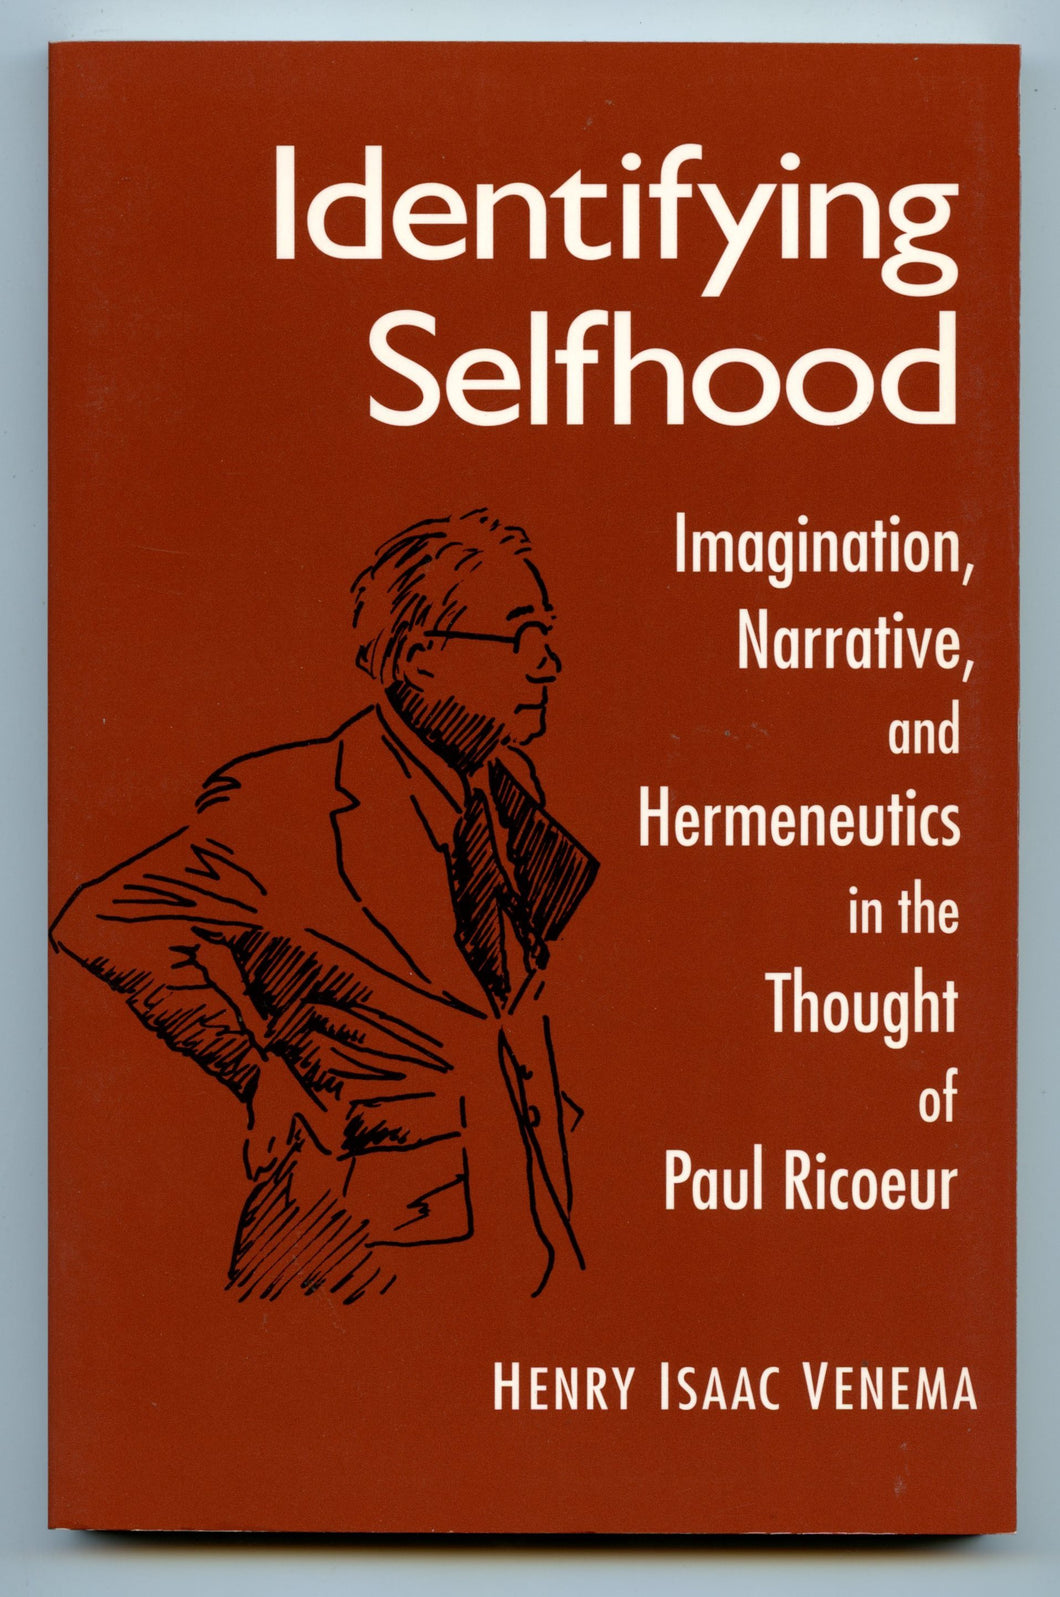 Identifying Selfhood: Imagination, Narrative, and Hermeneutics in the Thought of Paul Ricoeur